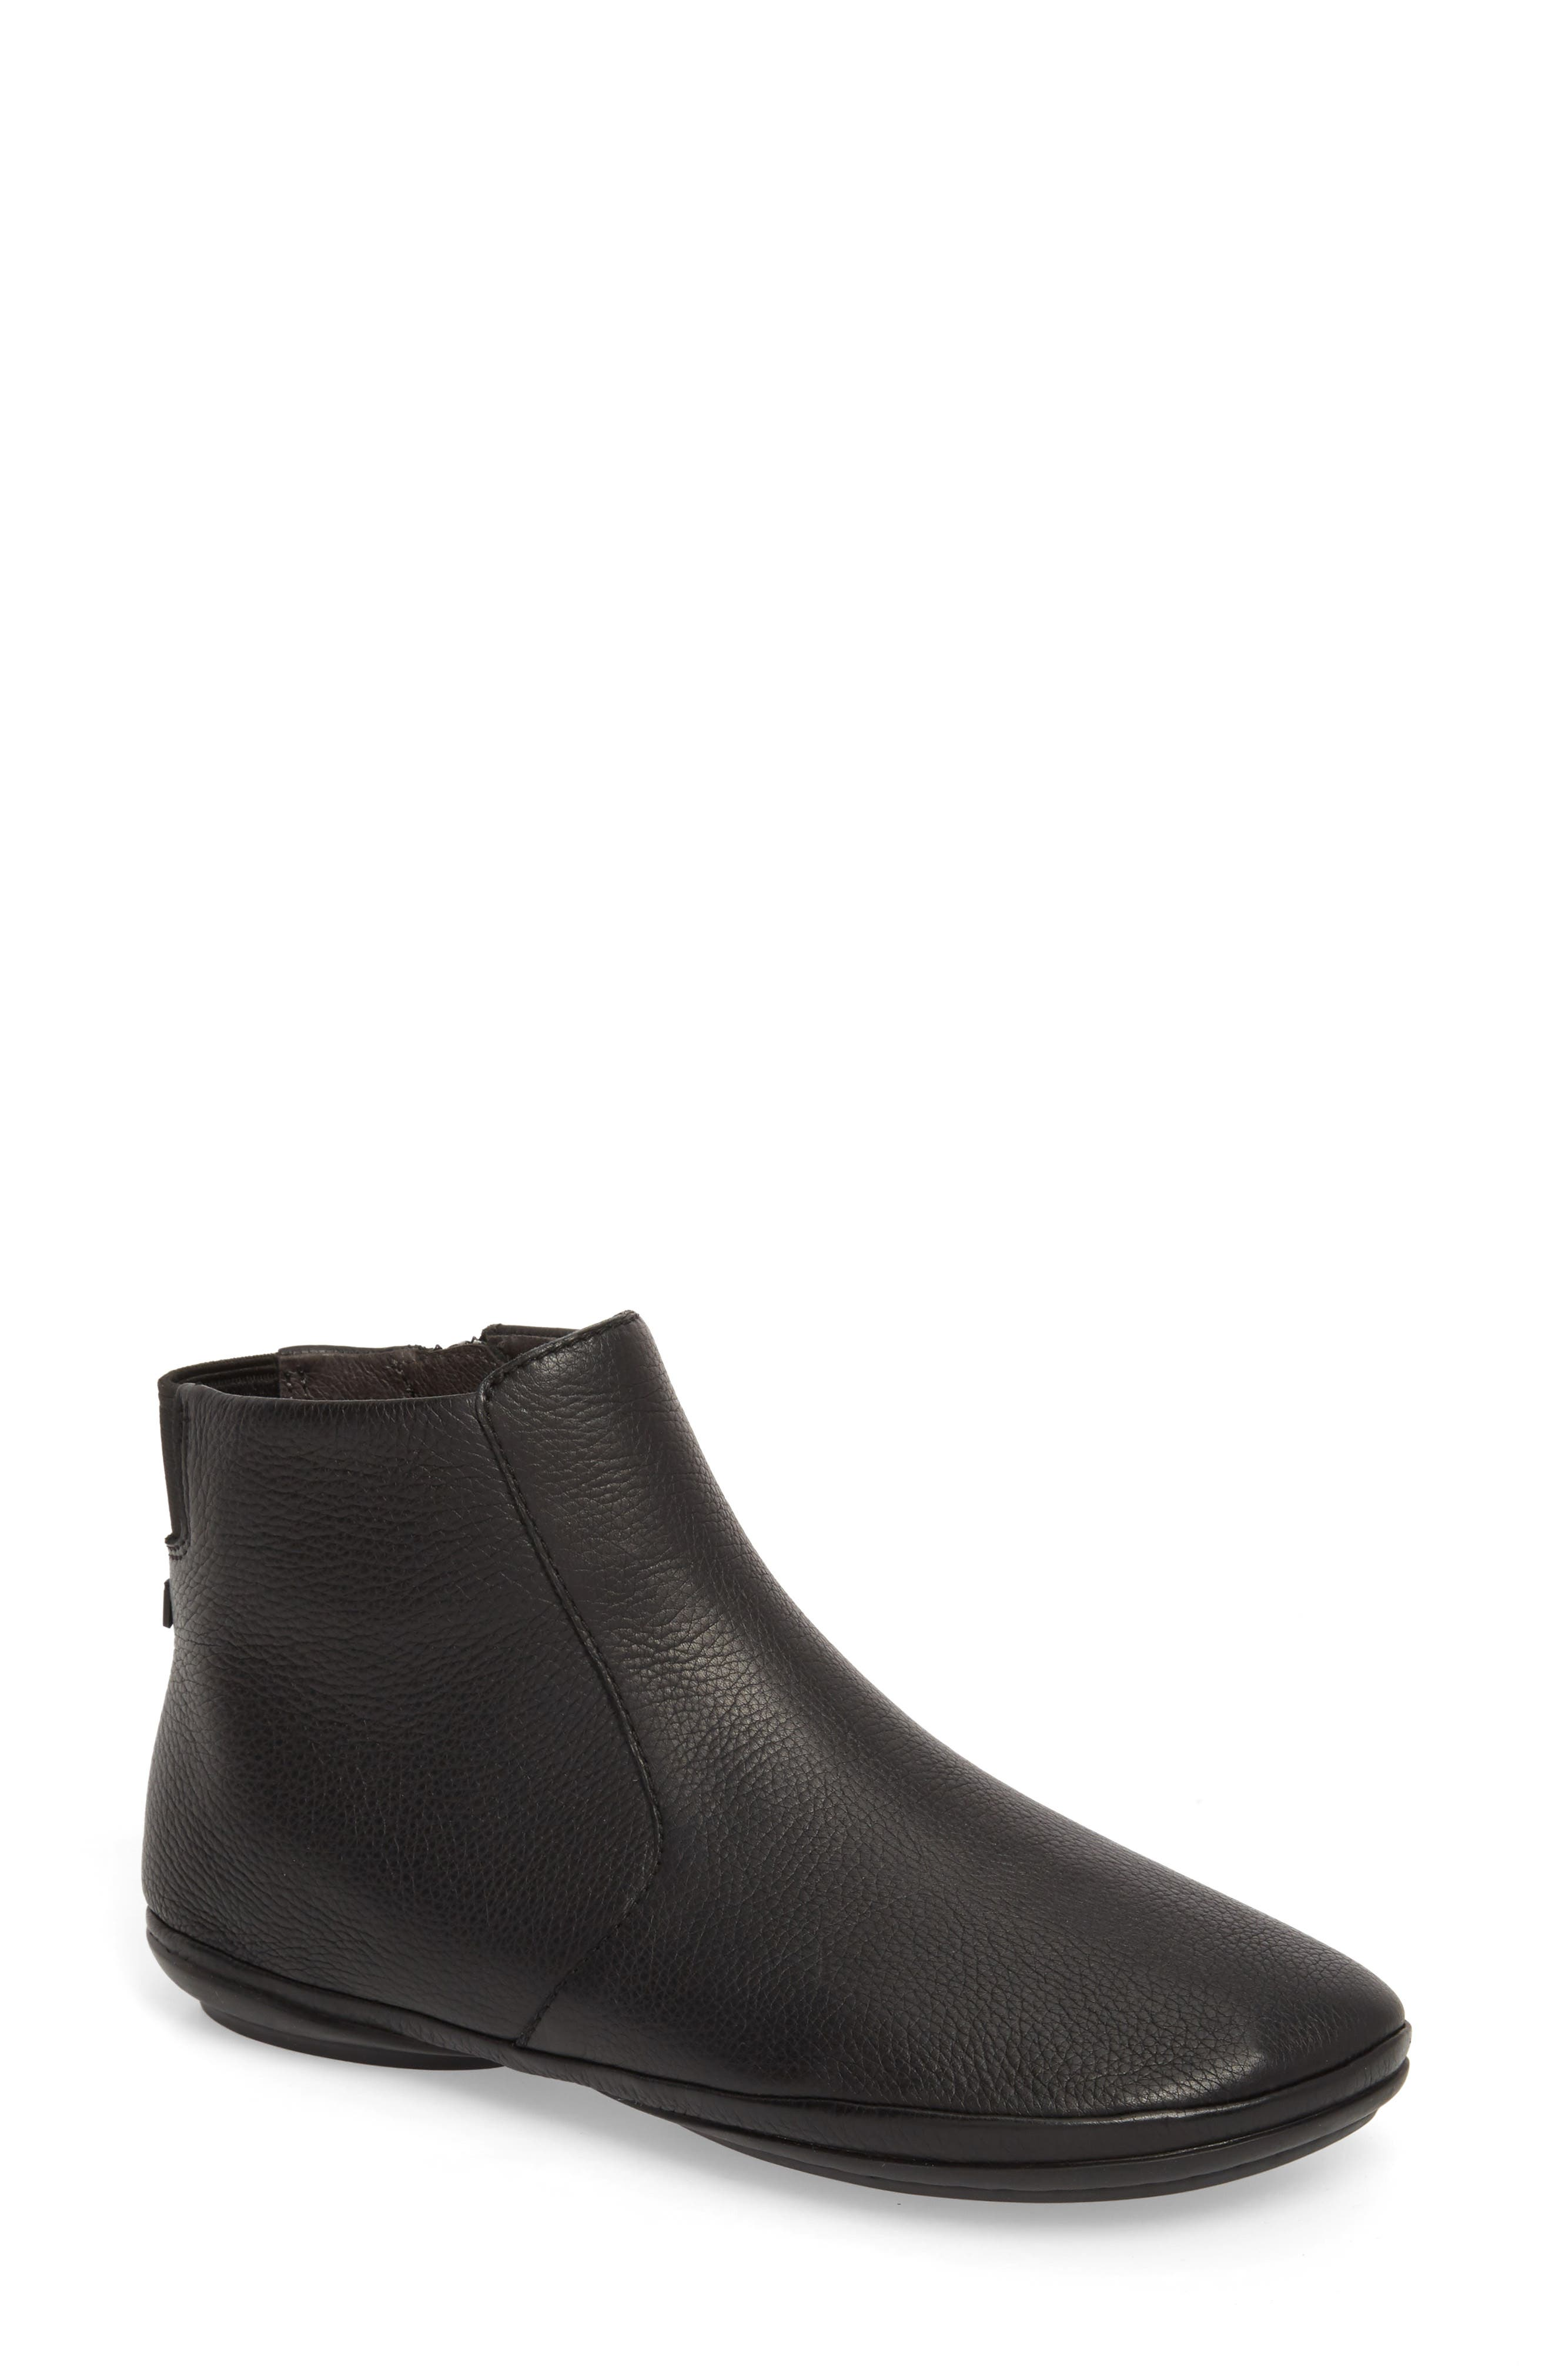 Right Nina Bootie,                             Main thumbnail 1, color,                             BLACK LEATHER